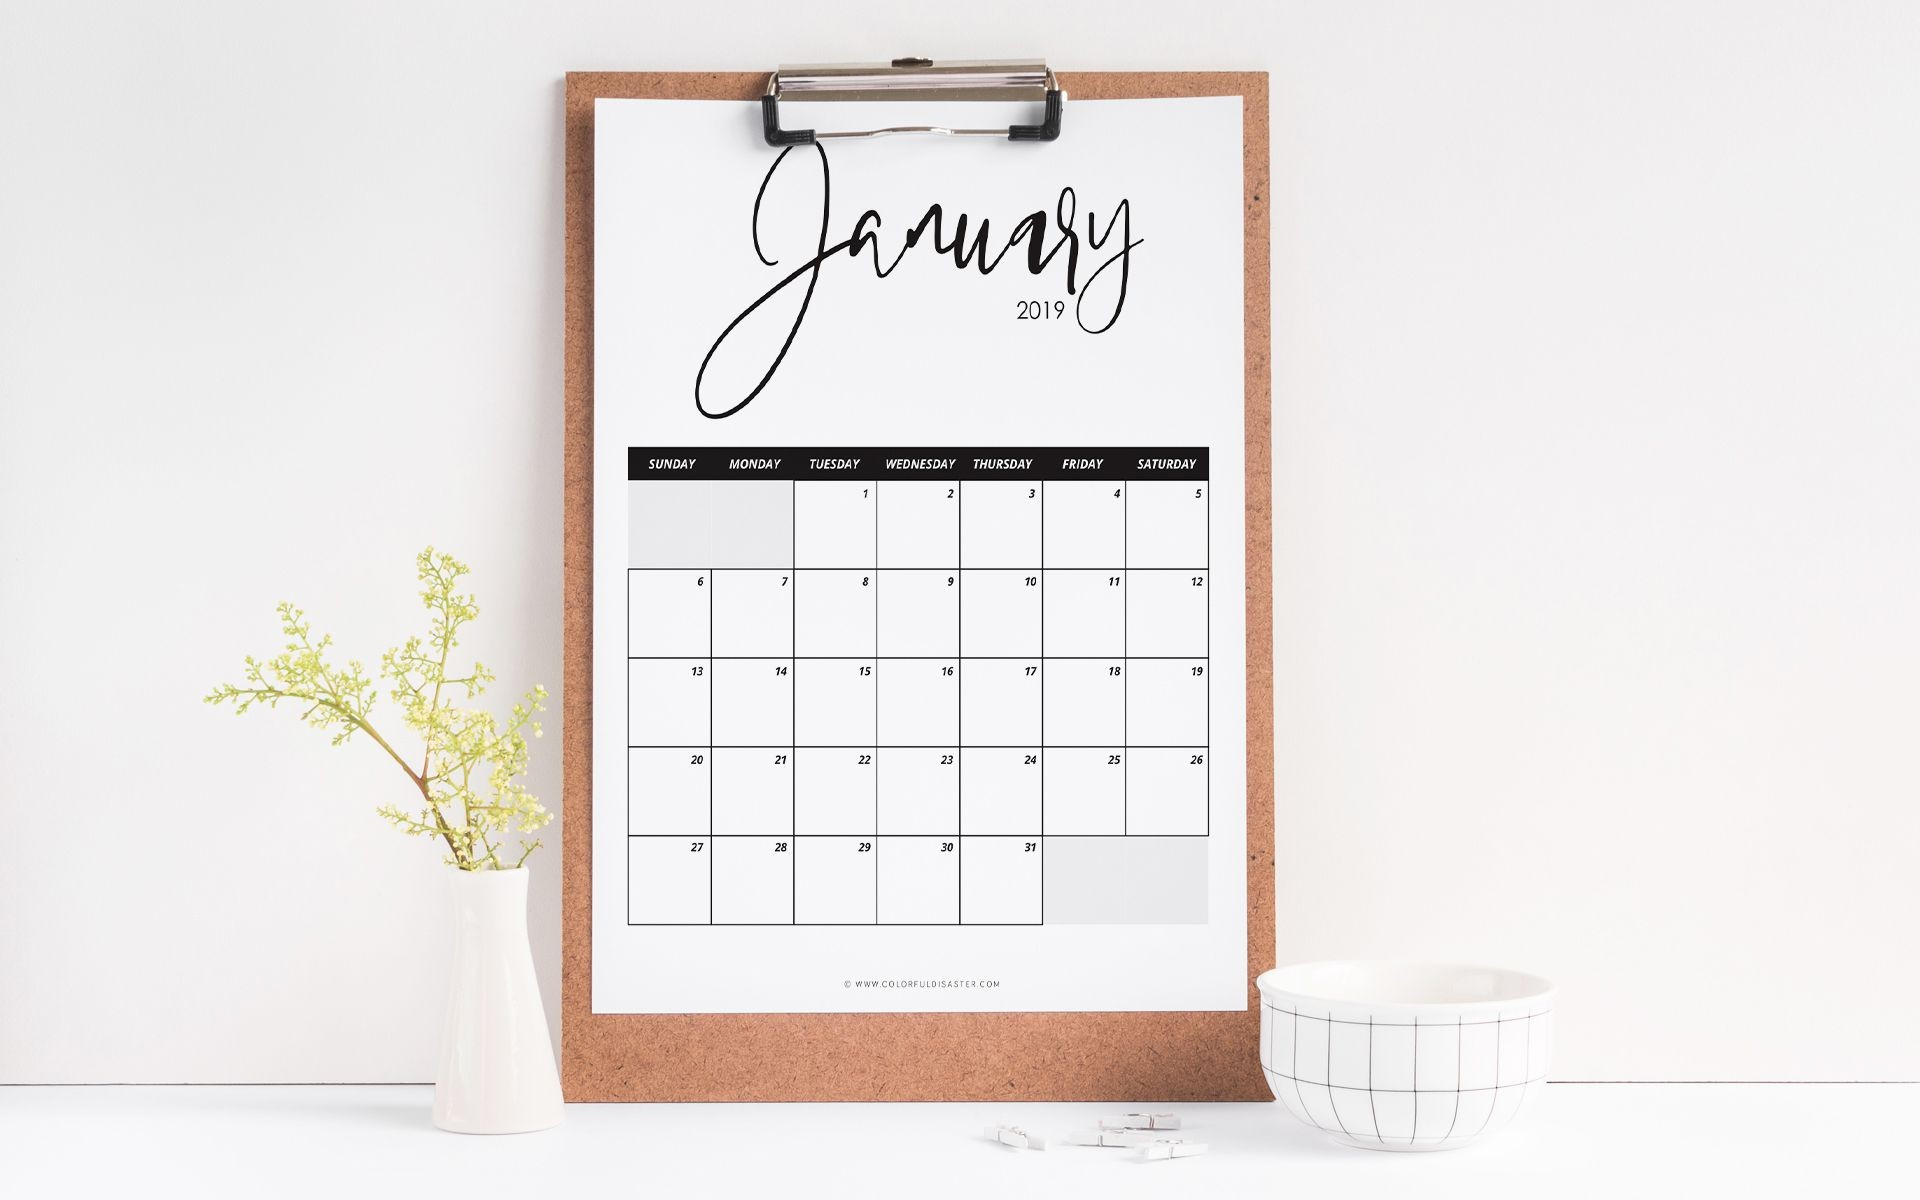 January 2019 Calendar Planner Más Actual 10 Stylish Free Printable Calendars for 2019